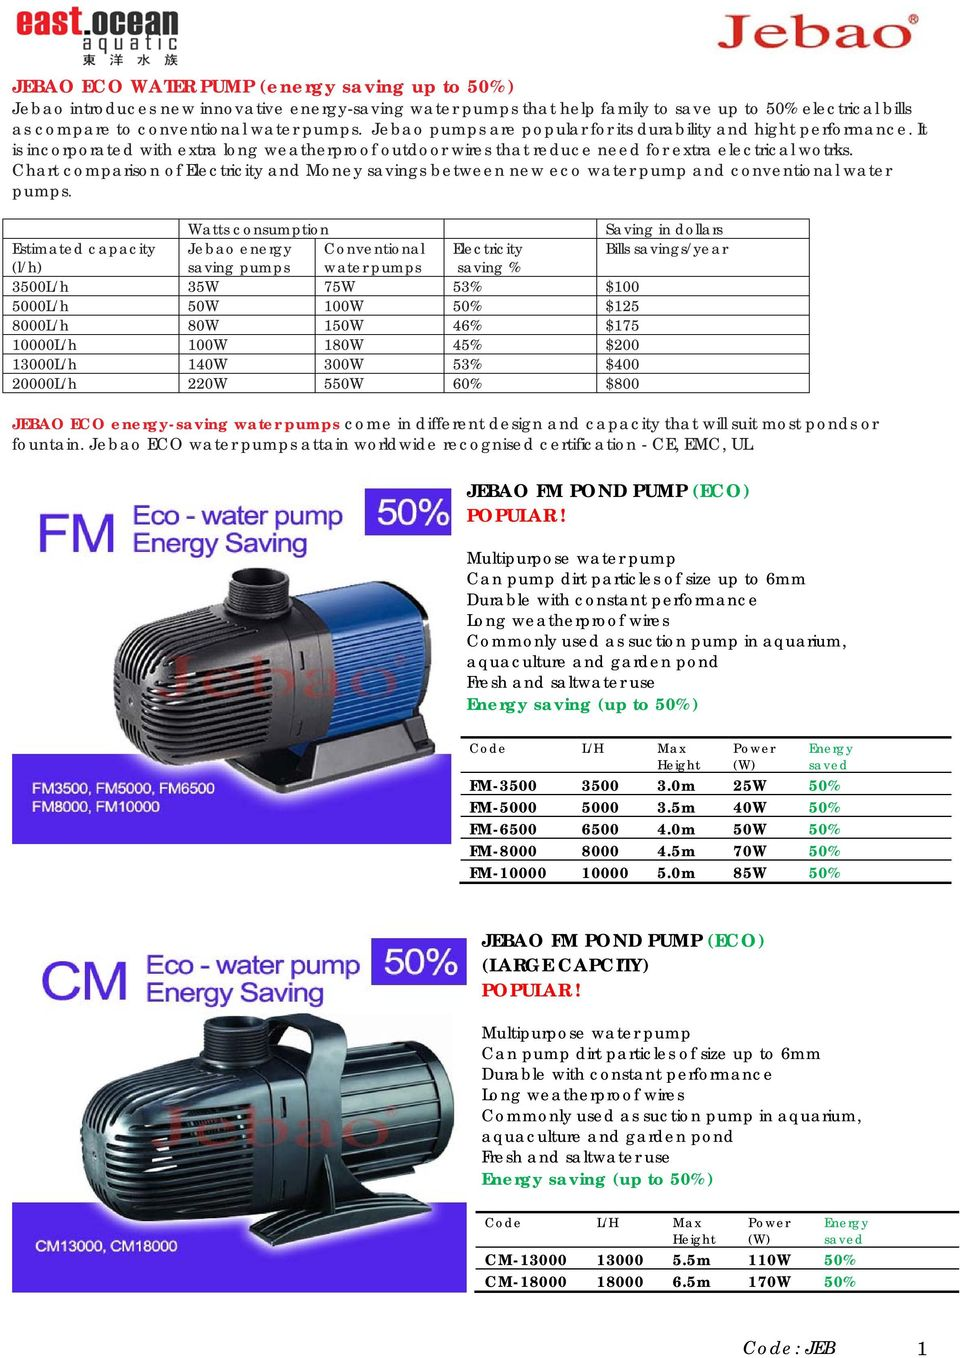 Jebao Fm Pond Pump Eco Popular Large Wiring Chart Comparison Of Electricity And Money Savings Between New Water Conventional Pumps